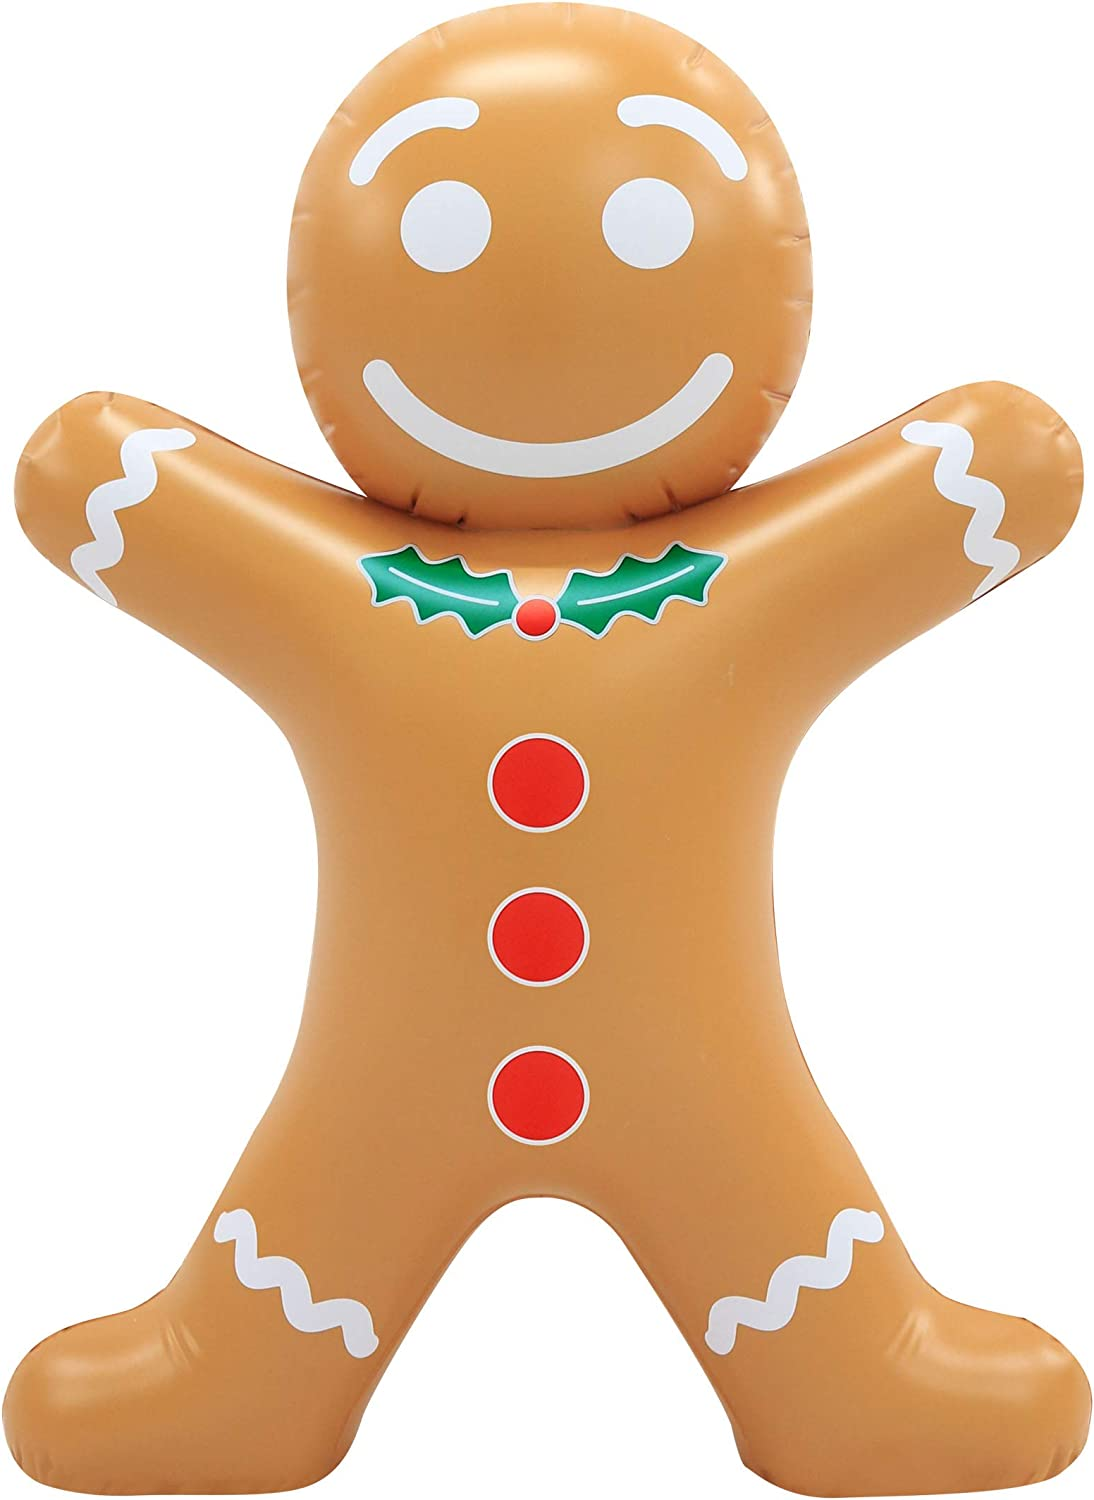 Occasions Blow-Up Inflatable Gingerbread Man